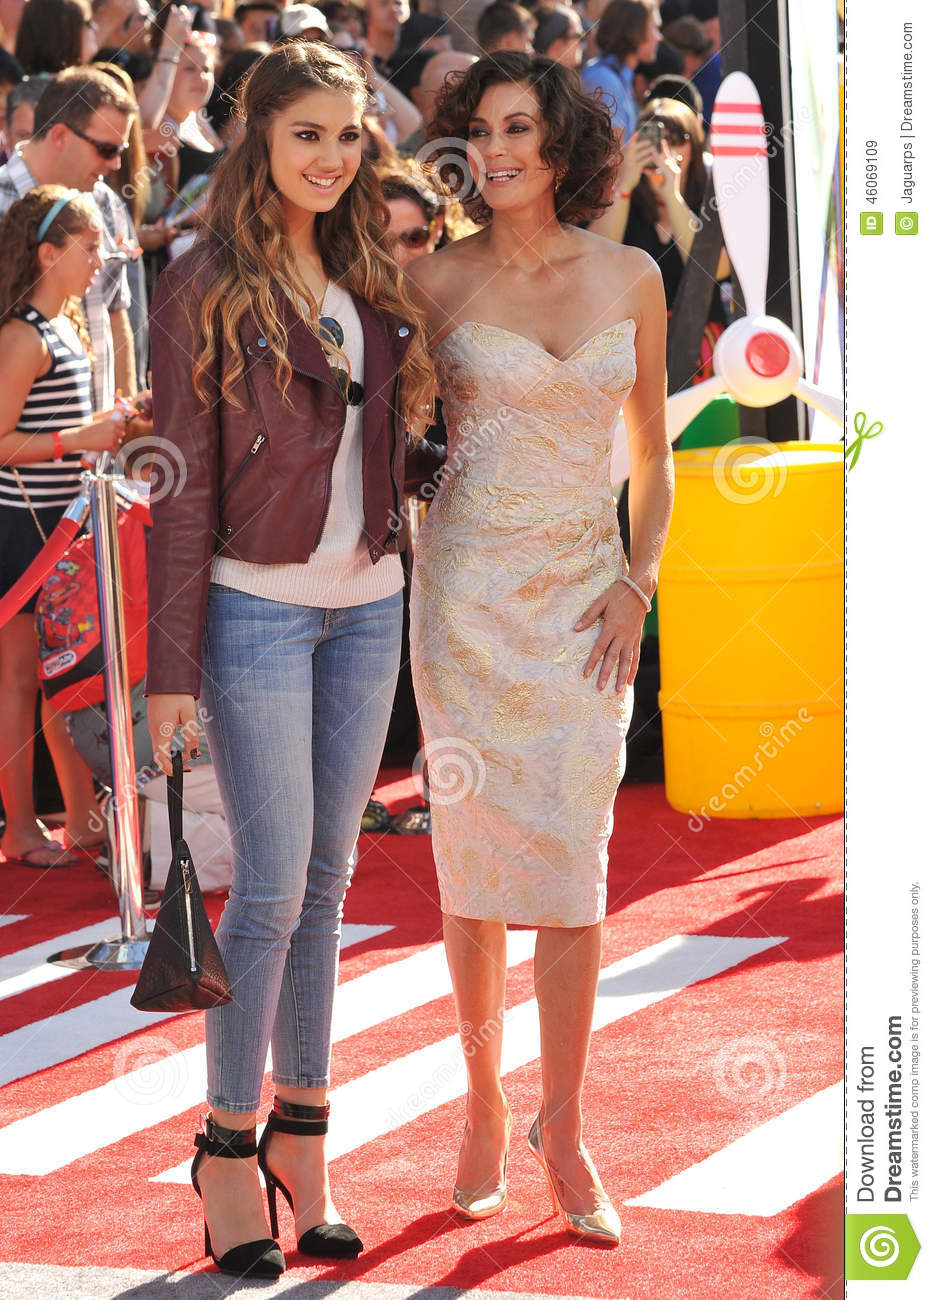 Teri Hatcher & Emerson Tenney